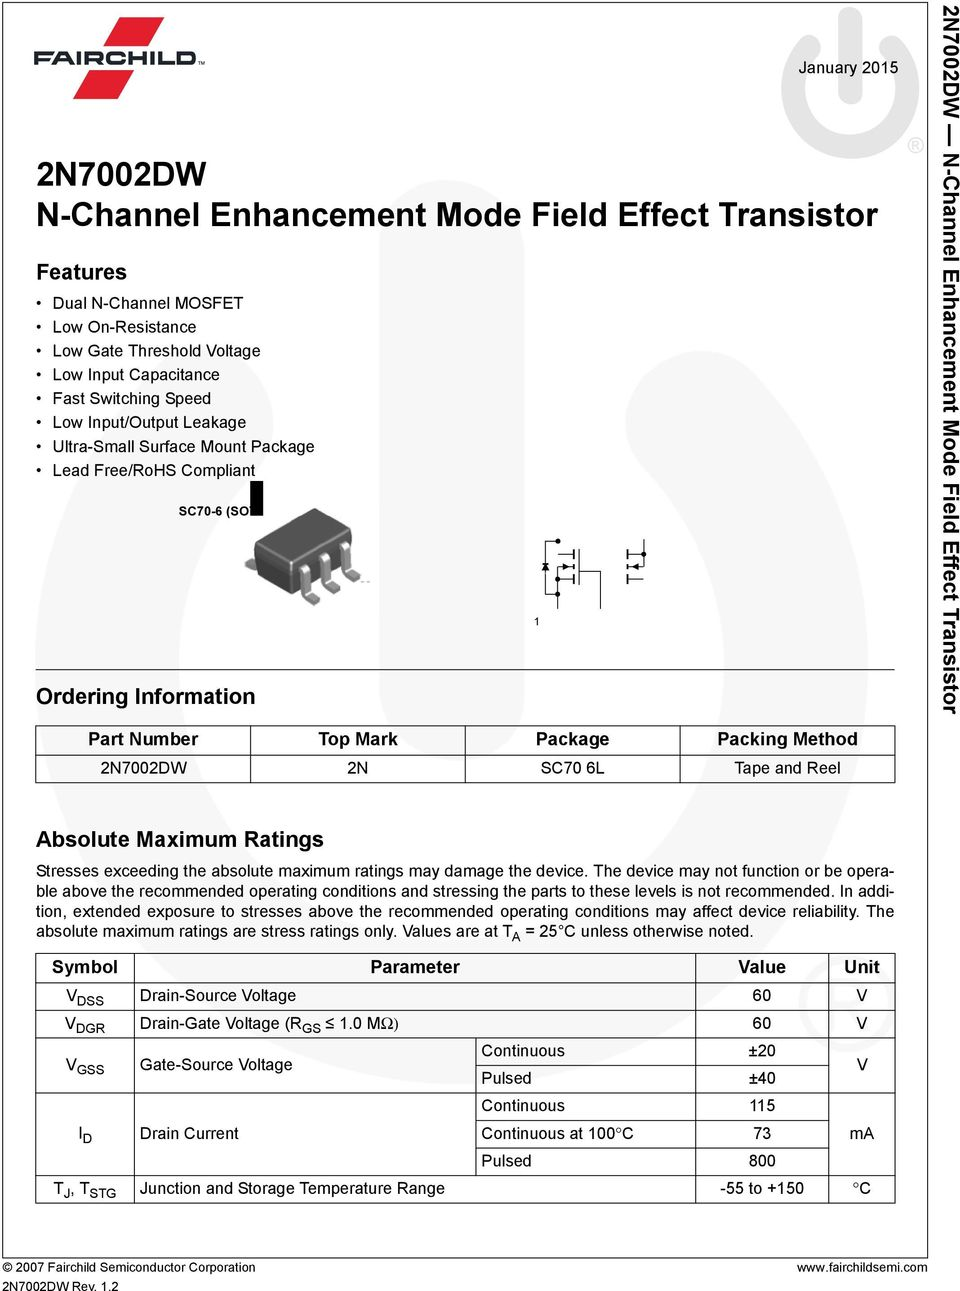 2n7002dw N Channel Enhancement Mode Field Effect Transistor Pdf Transistors Pchannel Mosfet Drainsource Polarity In Power Switch 2n Sc70 6l Tape And Reel Absolute Maximum Ratings Stresses Exceeding The